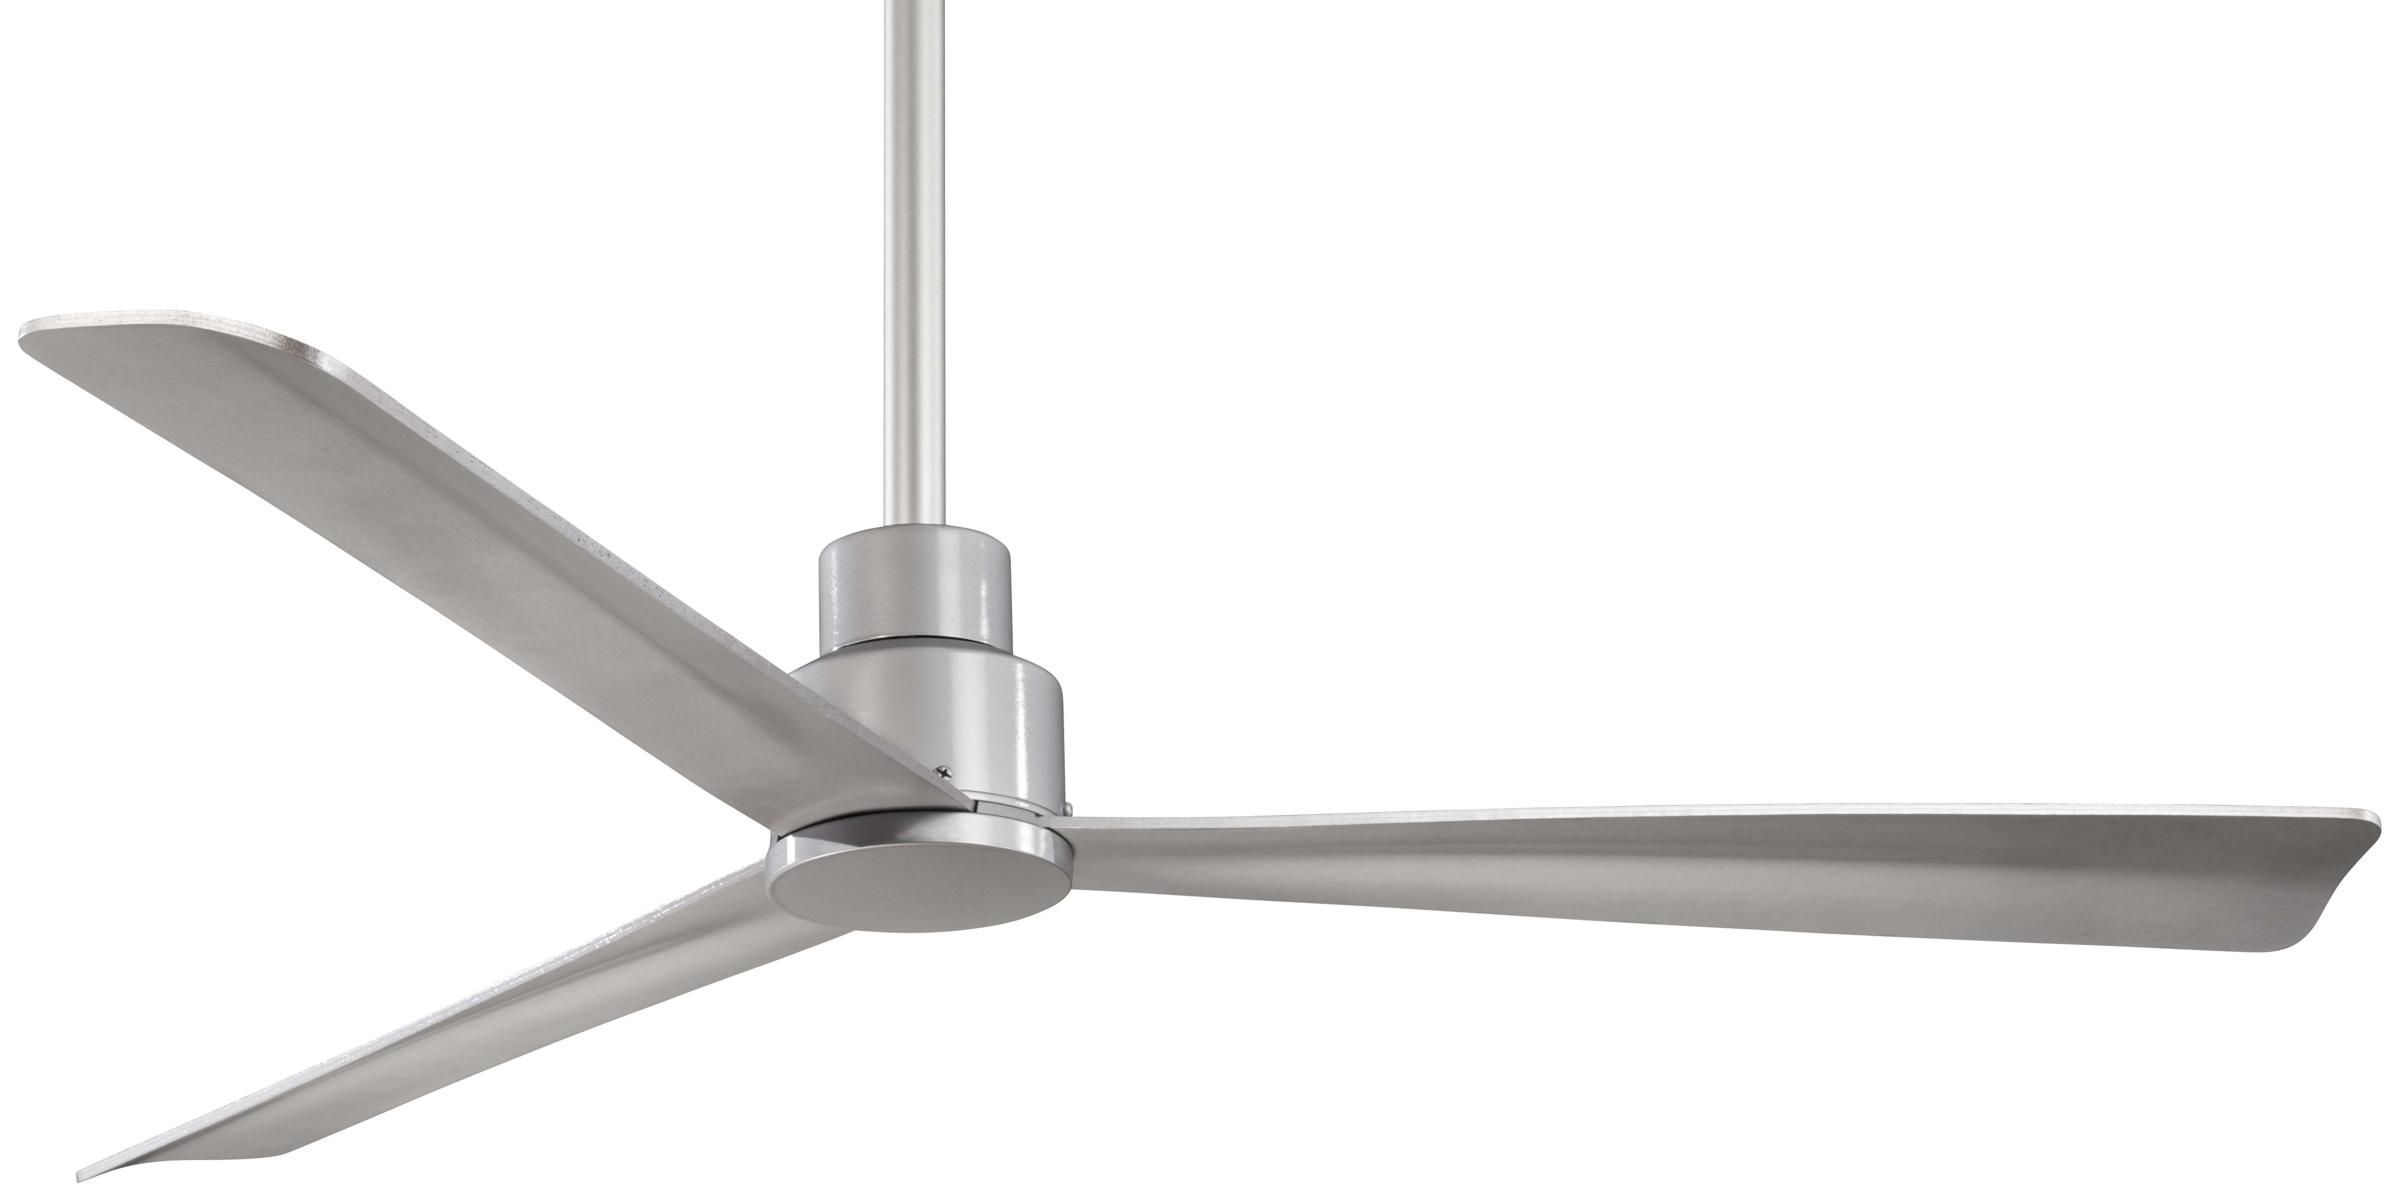 Minka aire simple ceiling fan f787 sl in silver guaranteed lowest minka aire simple ceiling fan f787 sl in silver guaranteed lowest price aloadofball Images